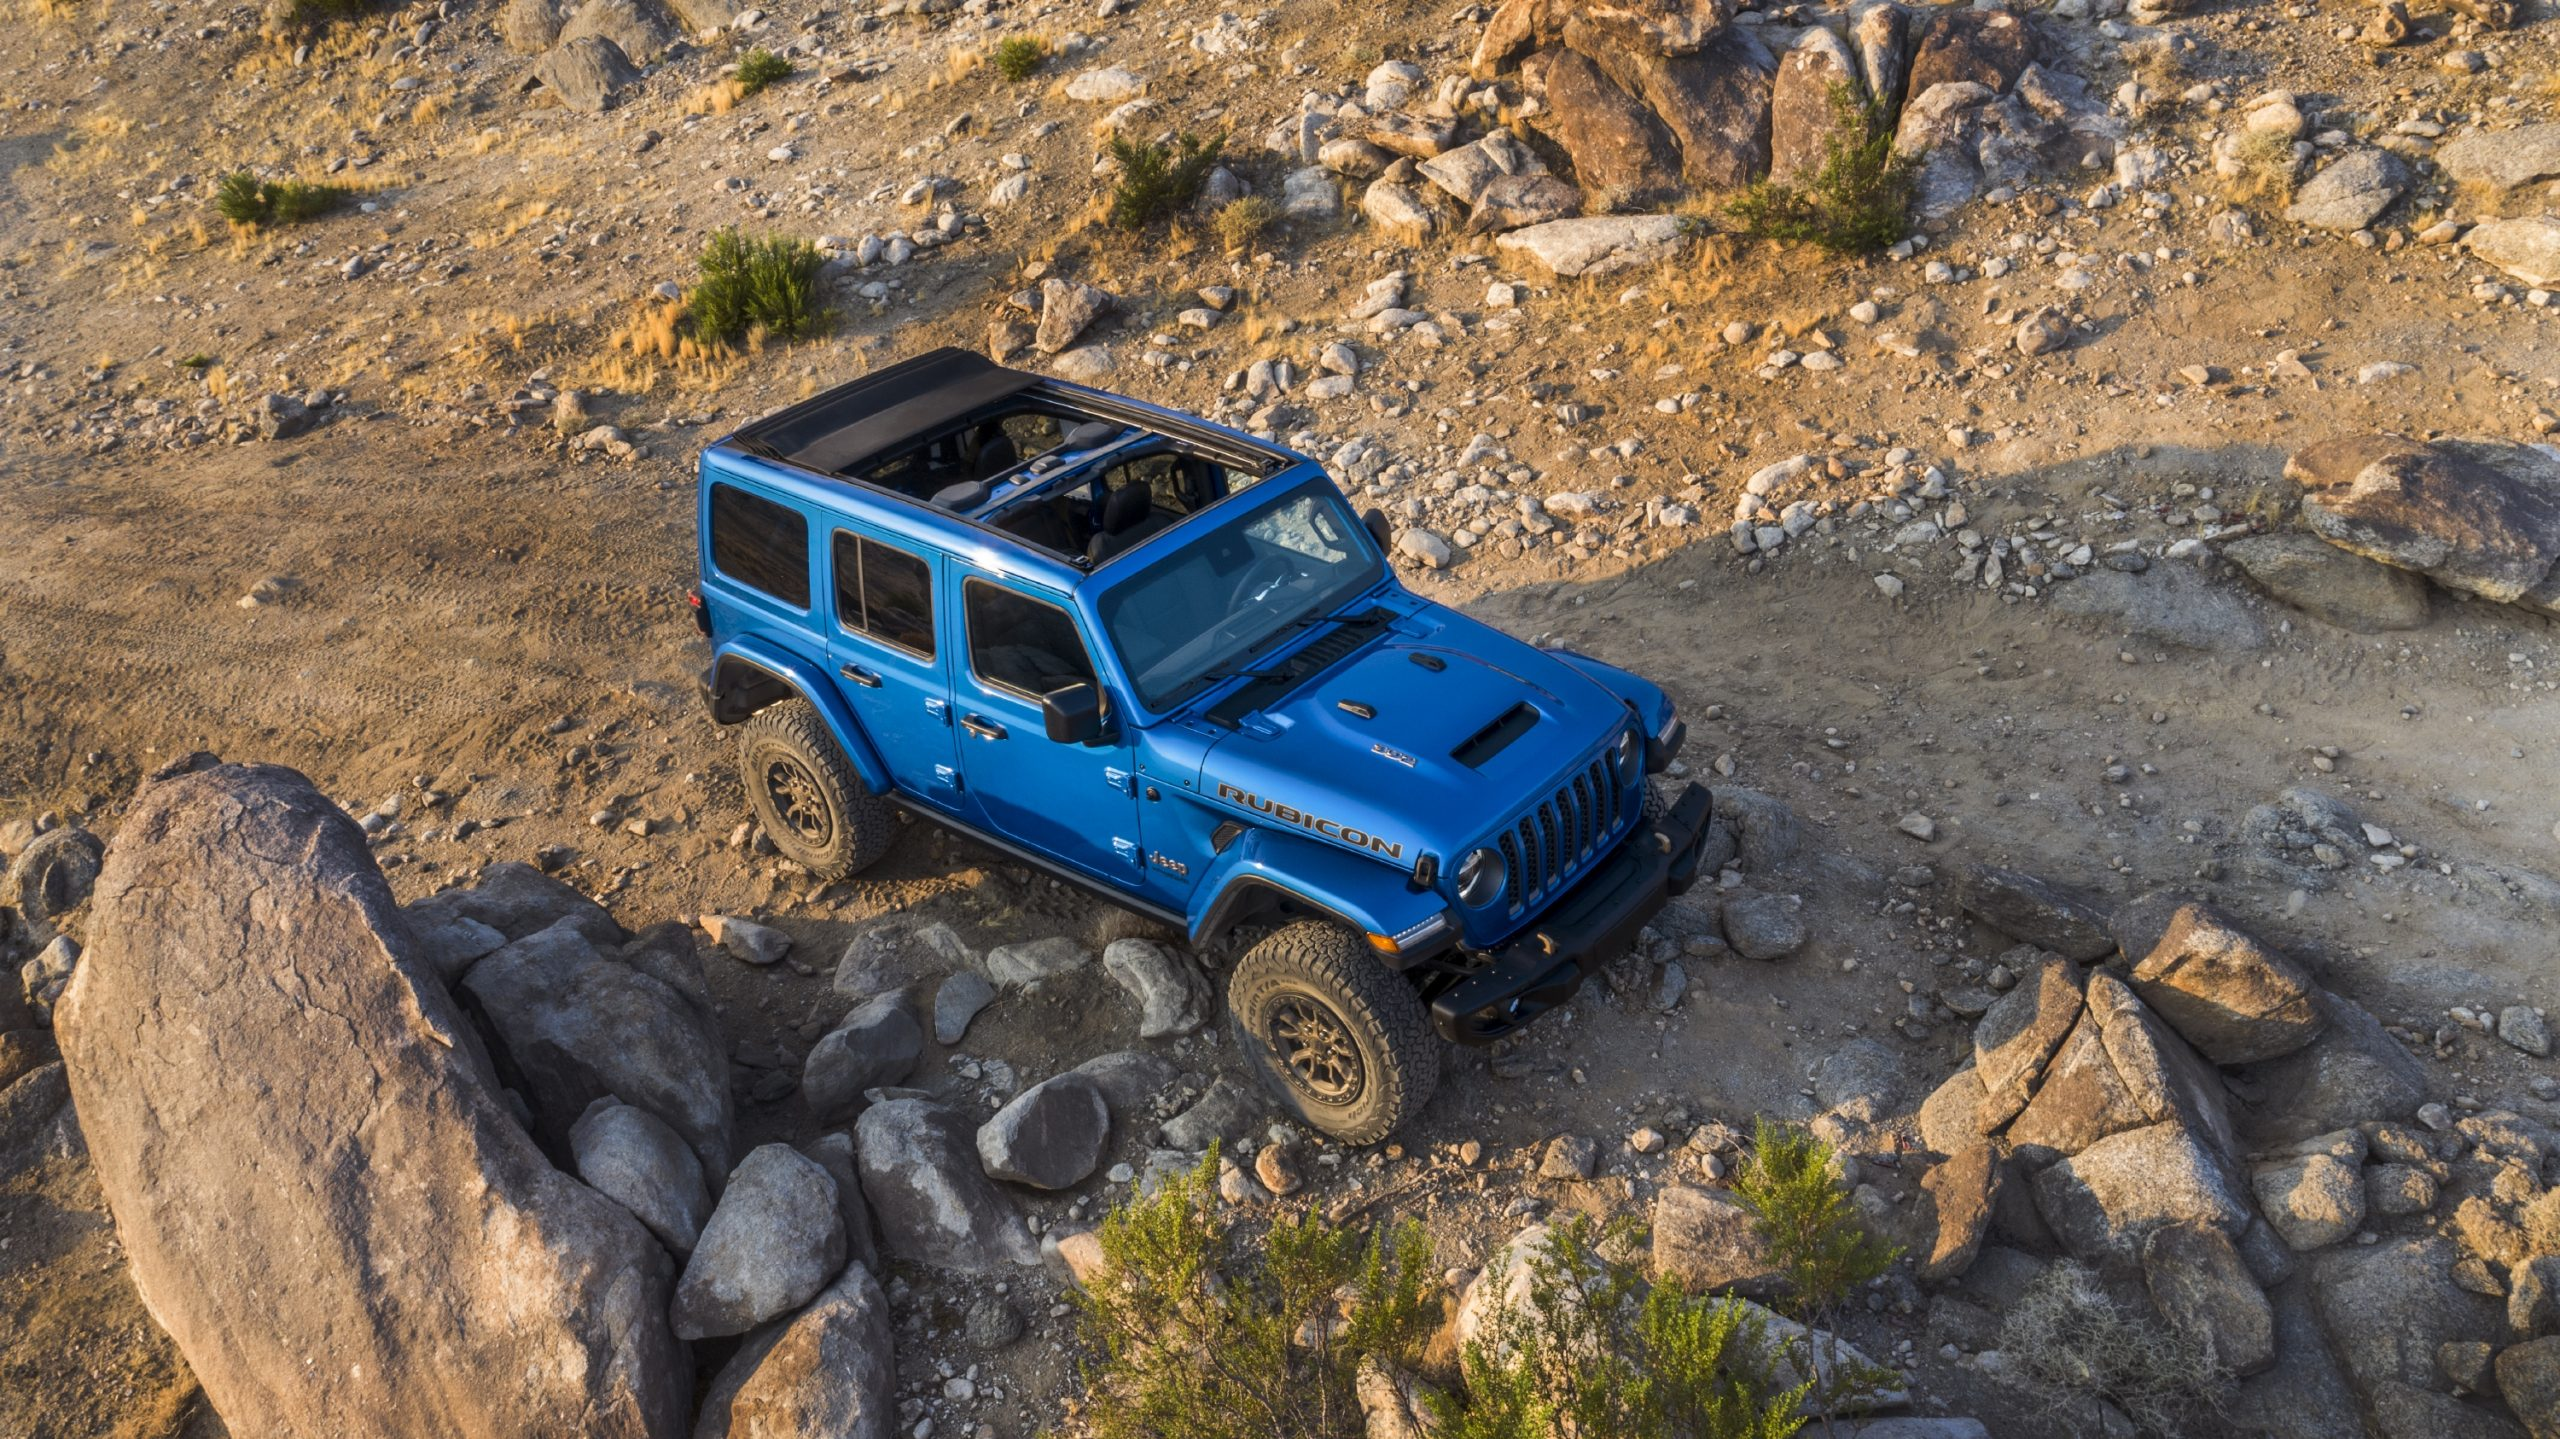 2021 Jeep Wrangler Rubicon 392 blue high front three quarter